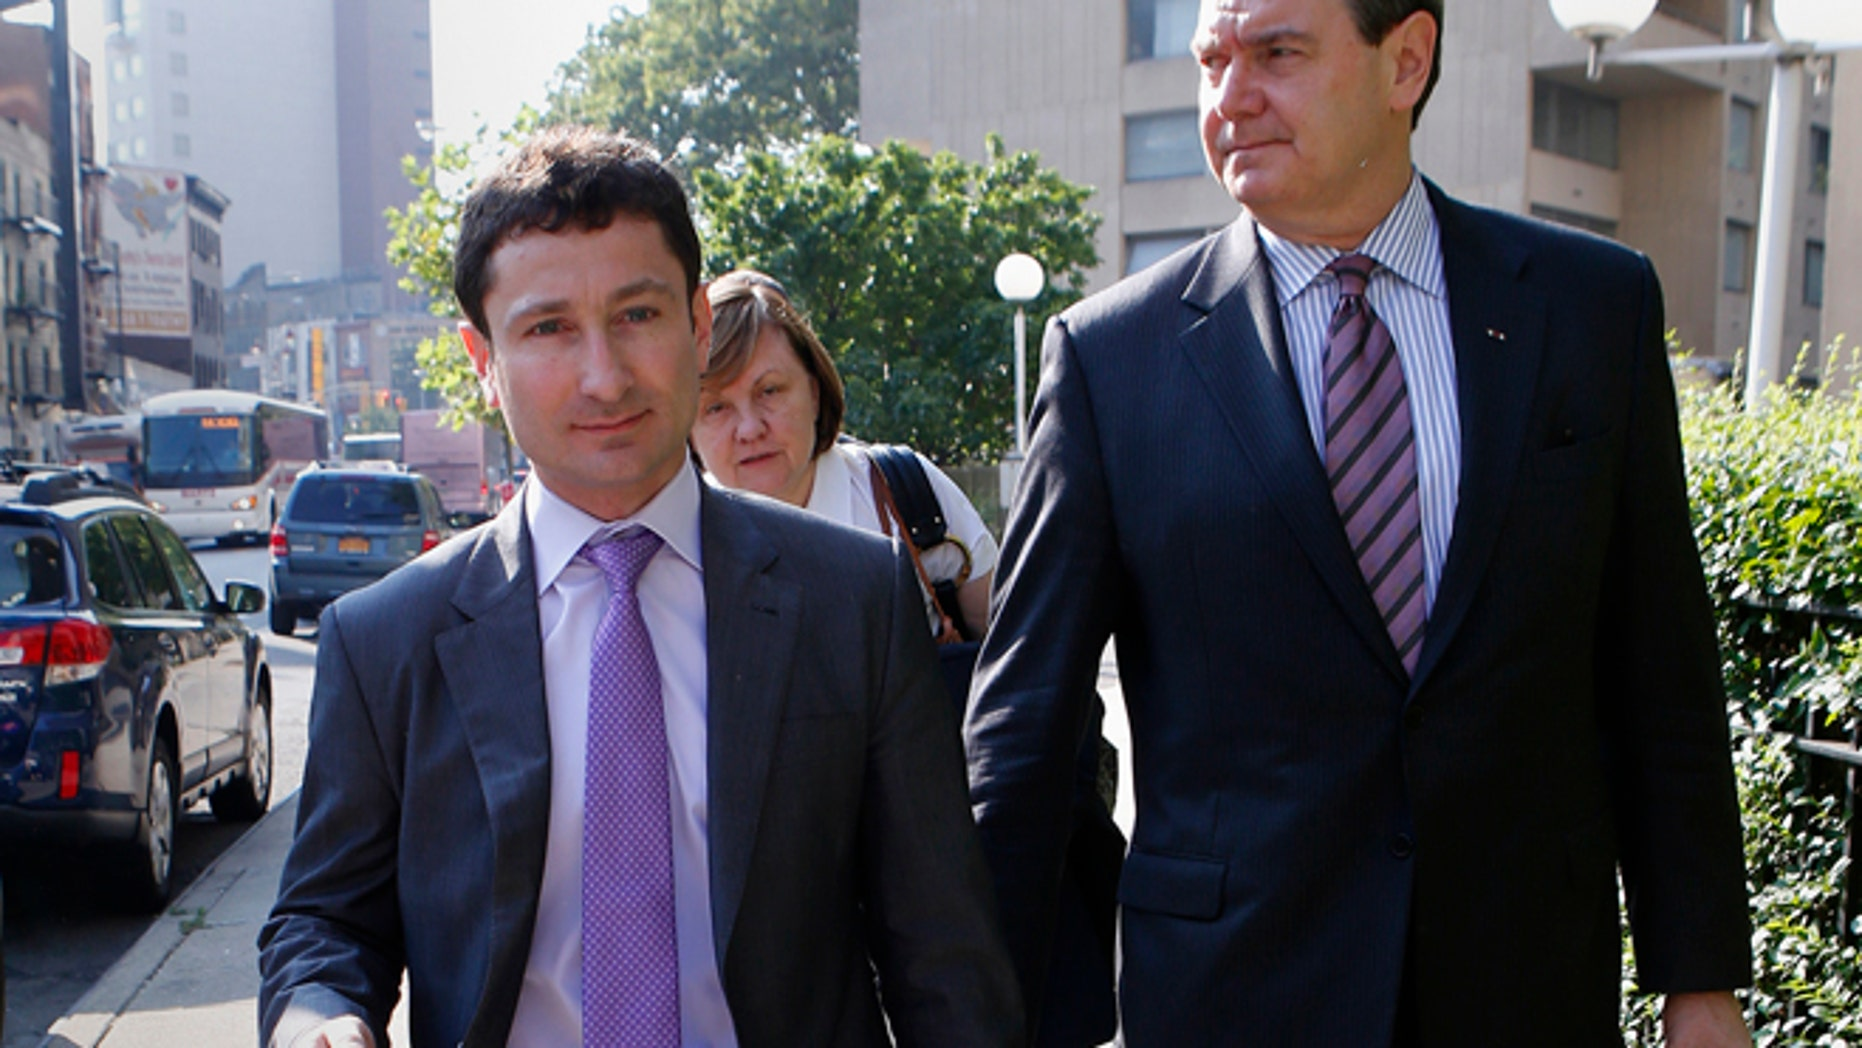 FILE 2013: Former Goldman Sachs bond trader Fabrice Tourre, left, arrives with members of his legal team at the Manhattan Federal Court in New York.